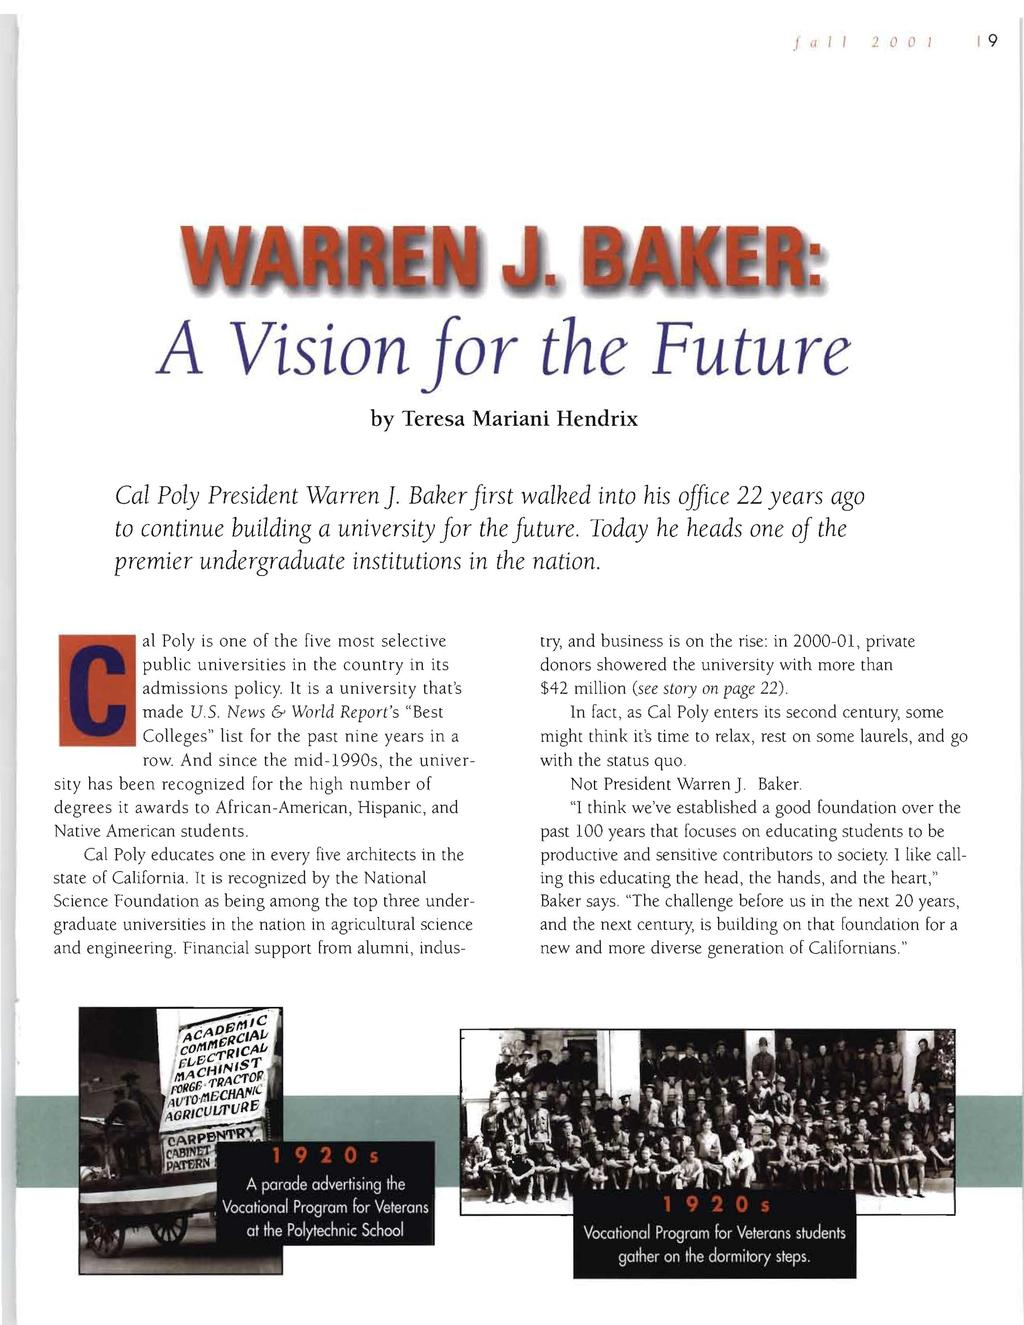 "I "" I I 2 (l (I / I 9 A Vision for the Future by Teresa Mariani Hendrix Cal Poly President Warren]. Baker first walked into his office 22 years ago to continue building a university for the future."